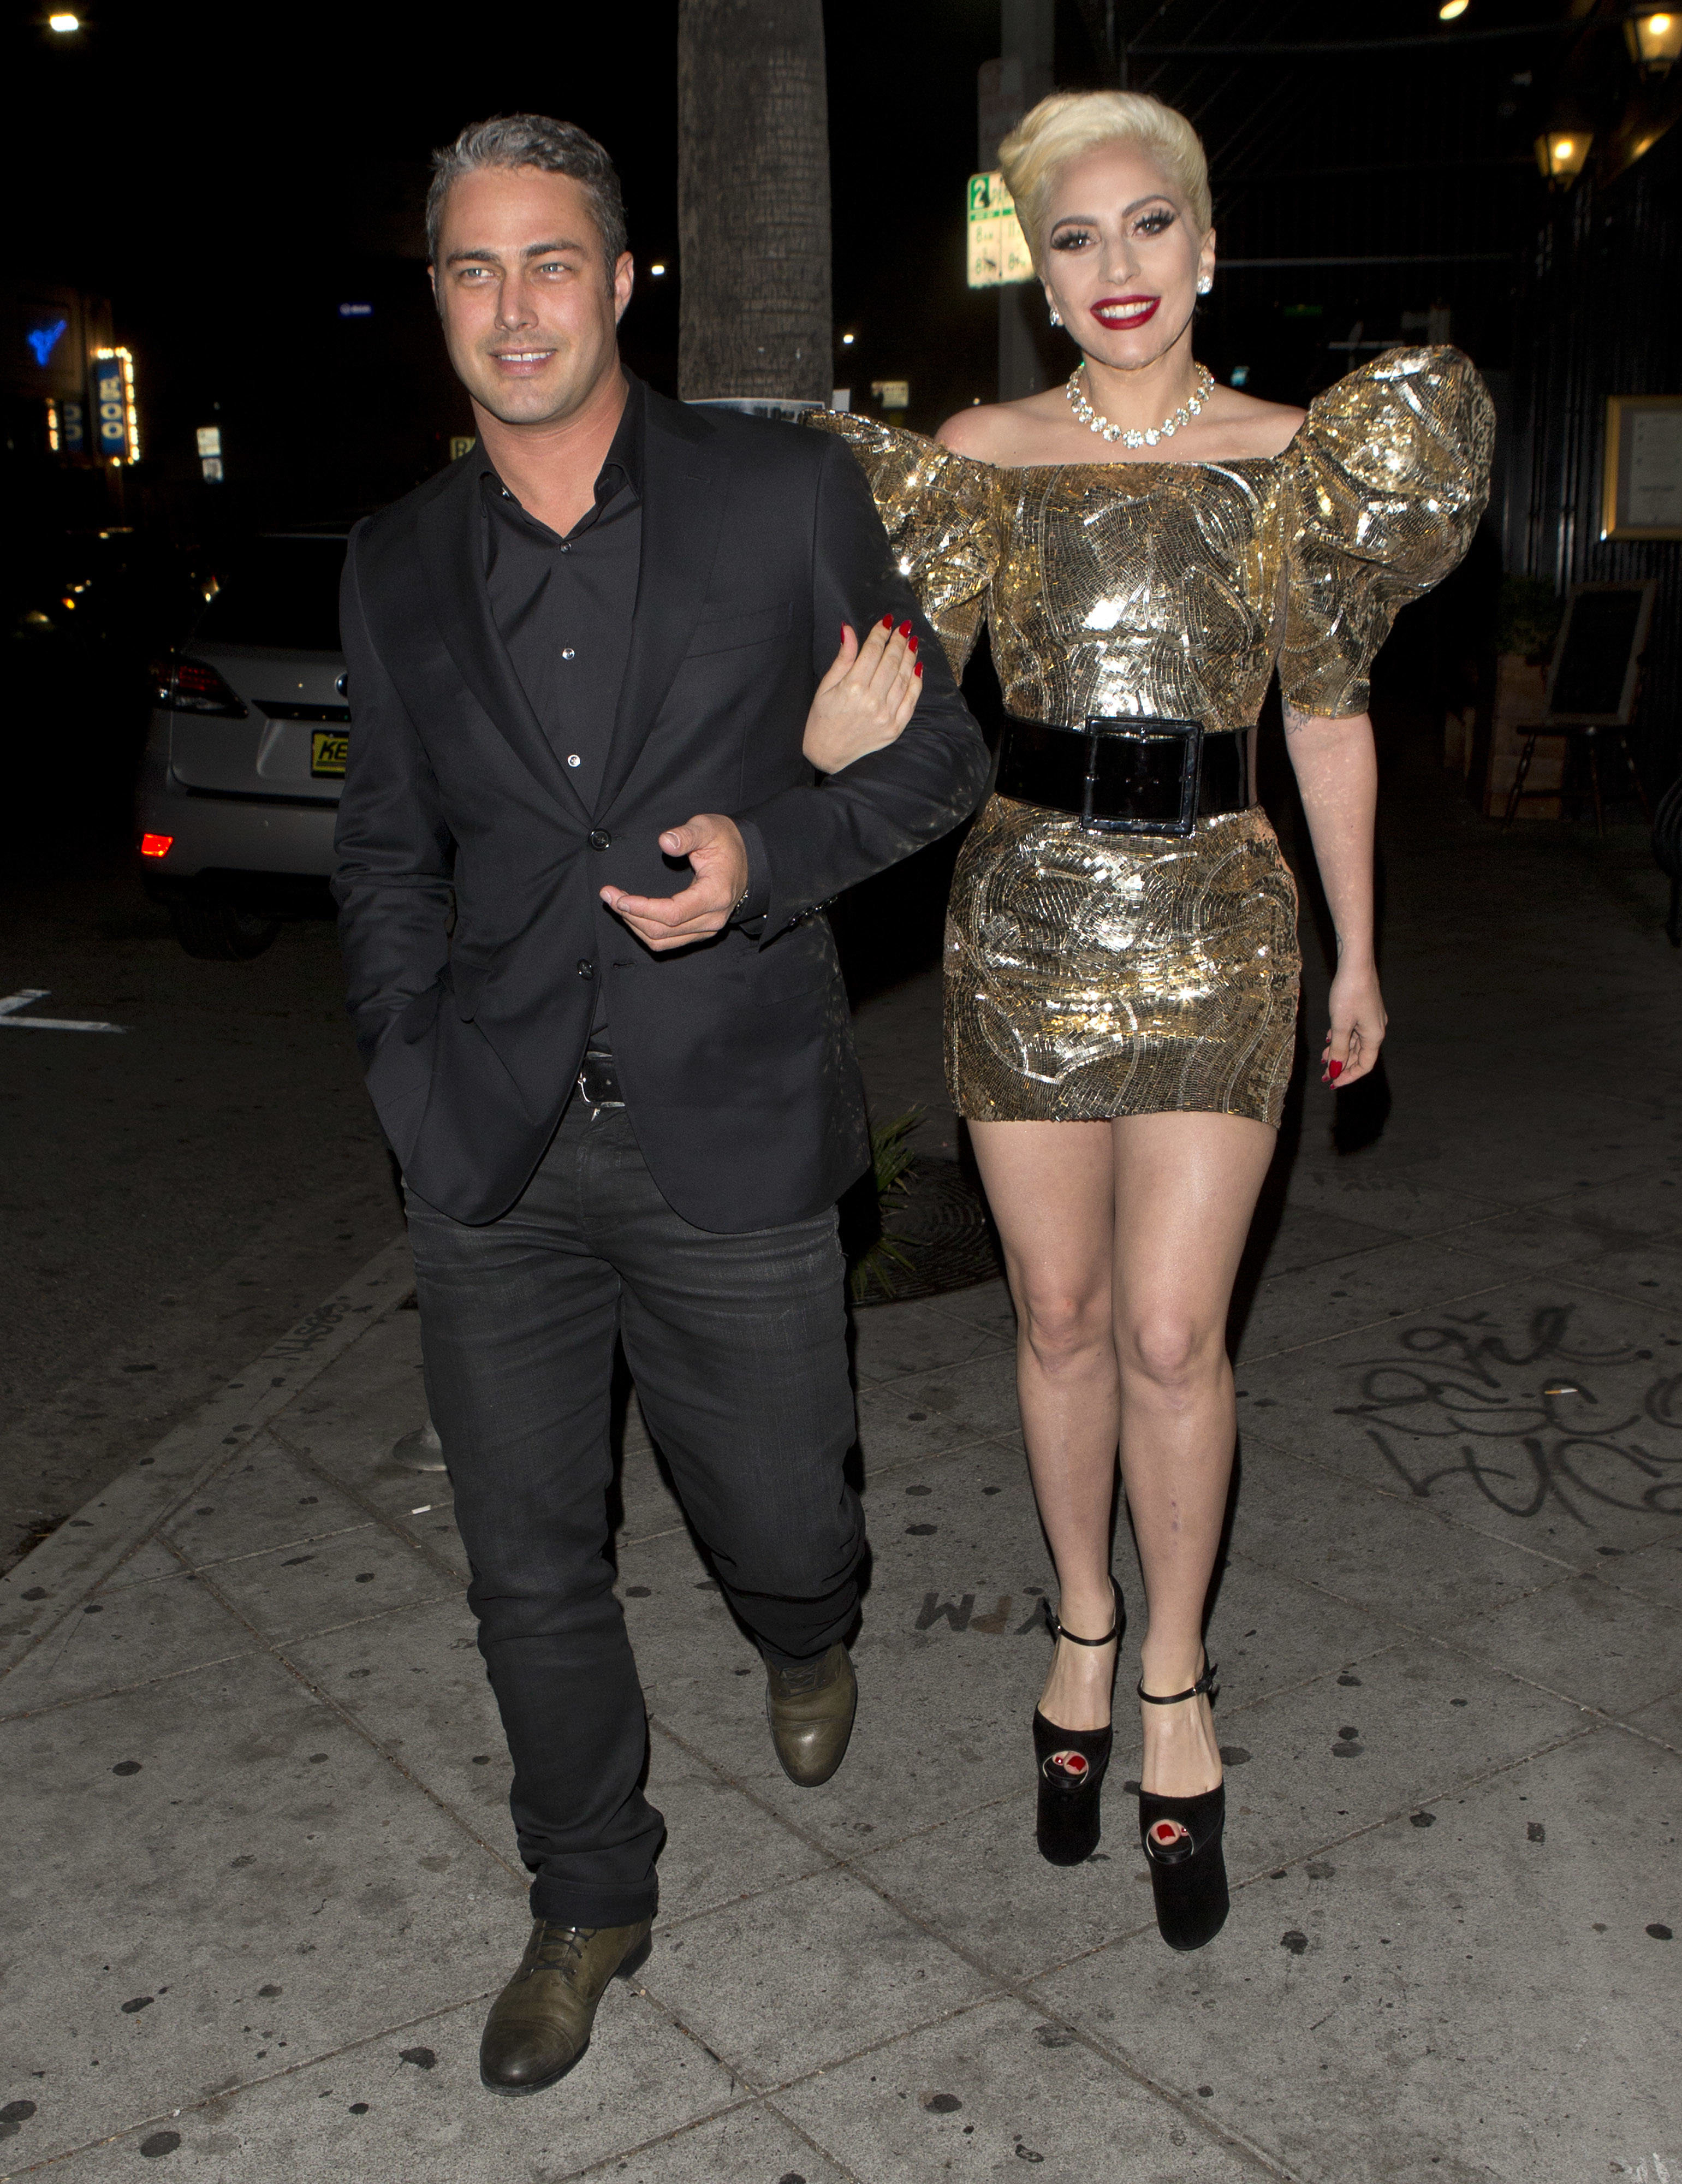 Taylor Kinney wants to get back together with Lady Gaga: Report